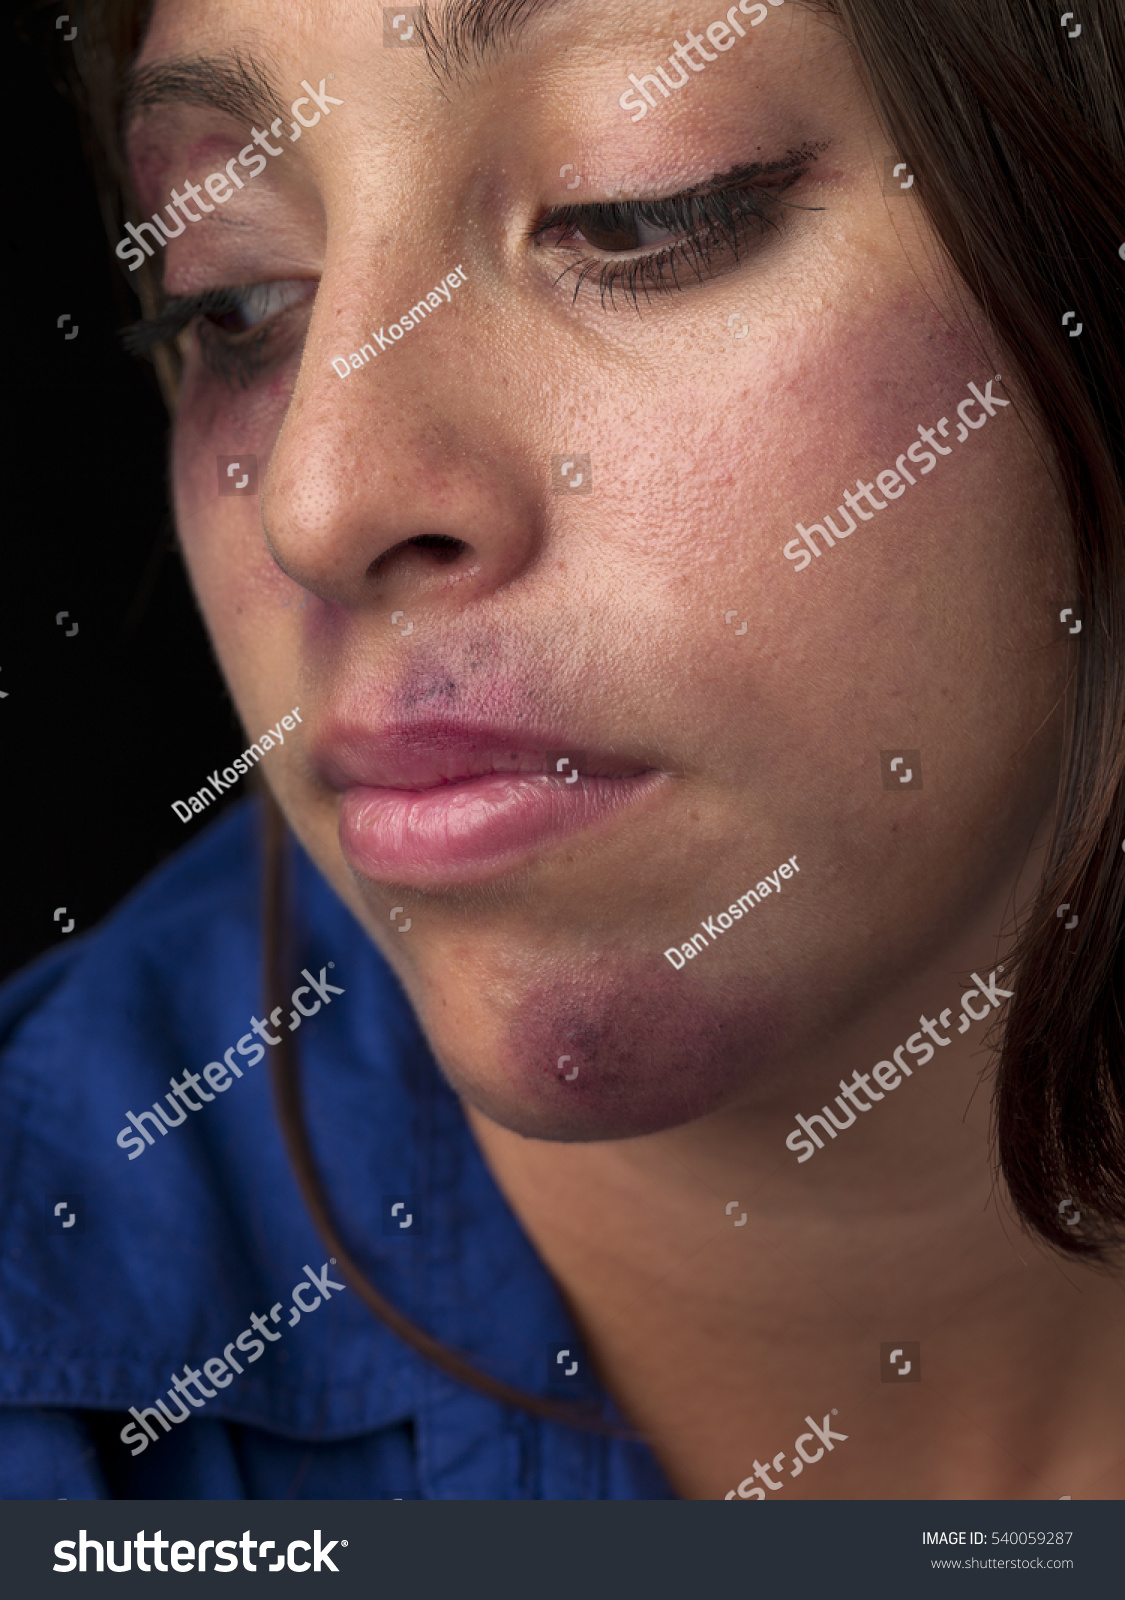 woman body facial injuries which can stock photo 540059287